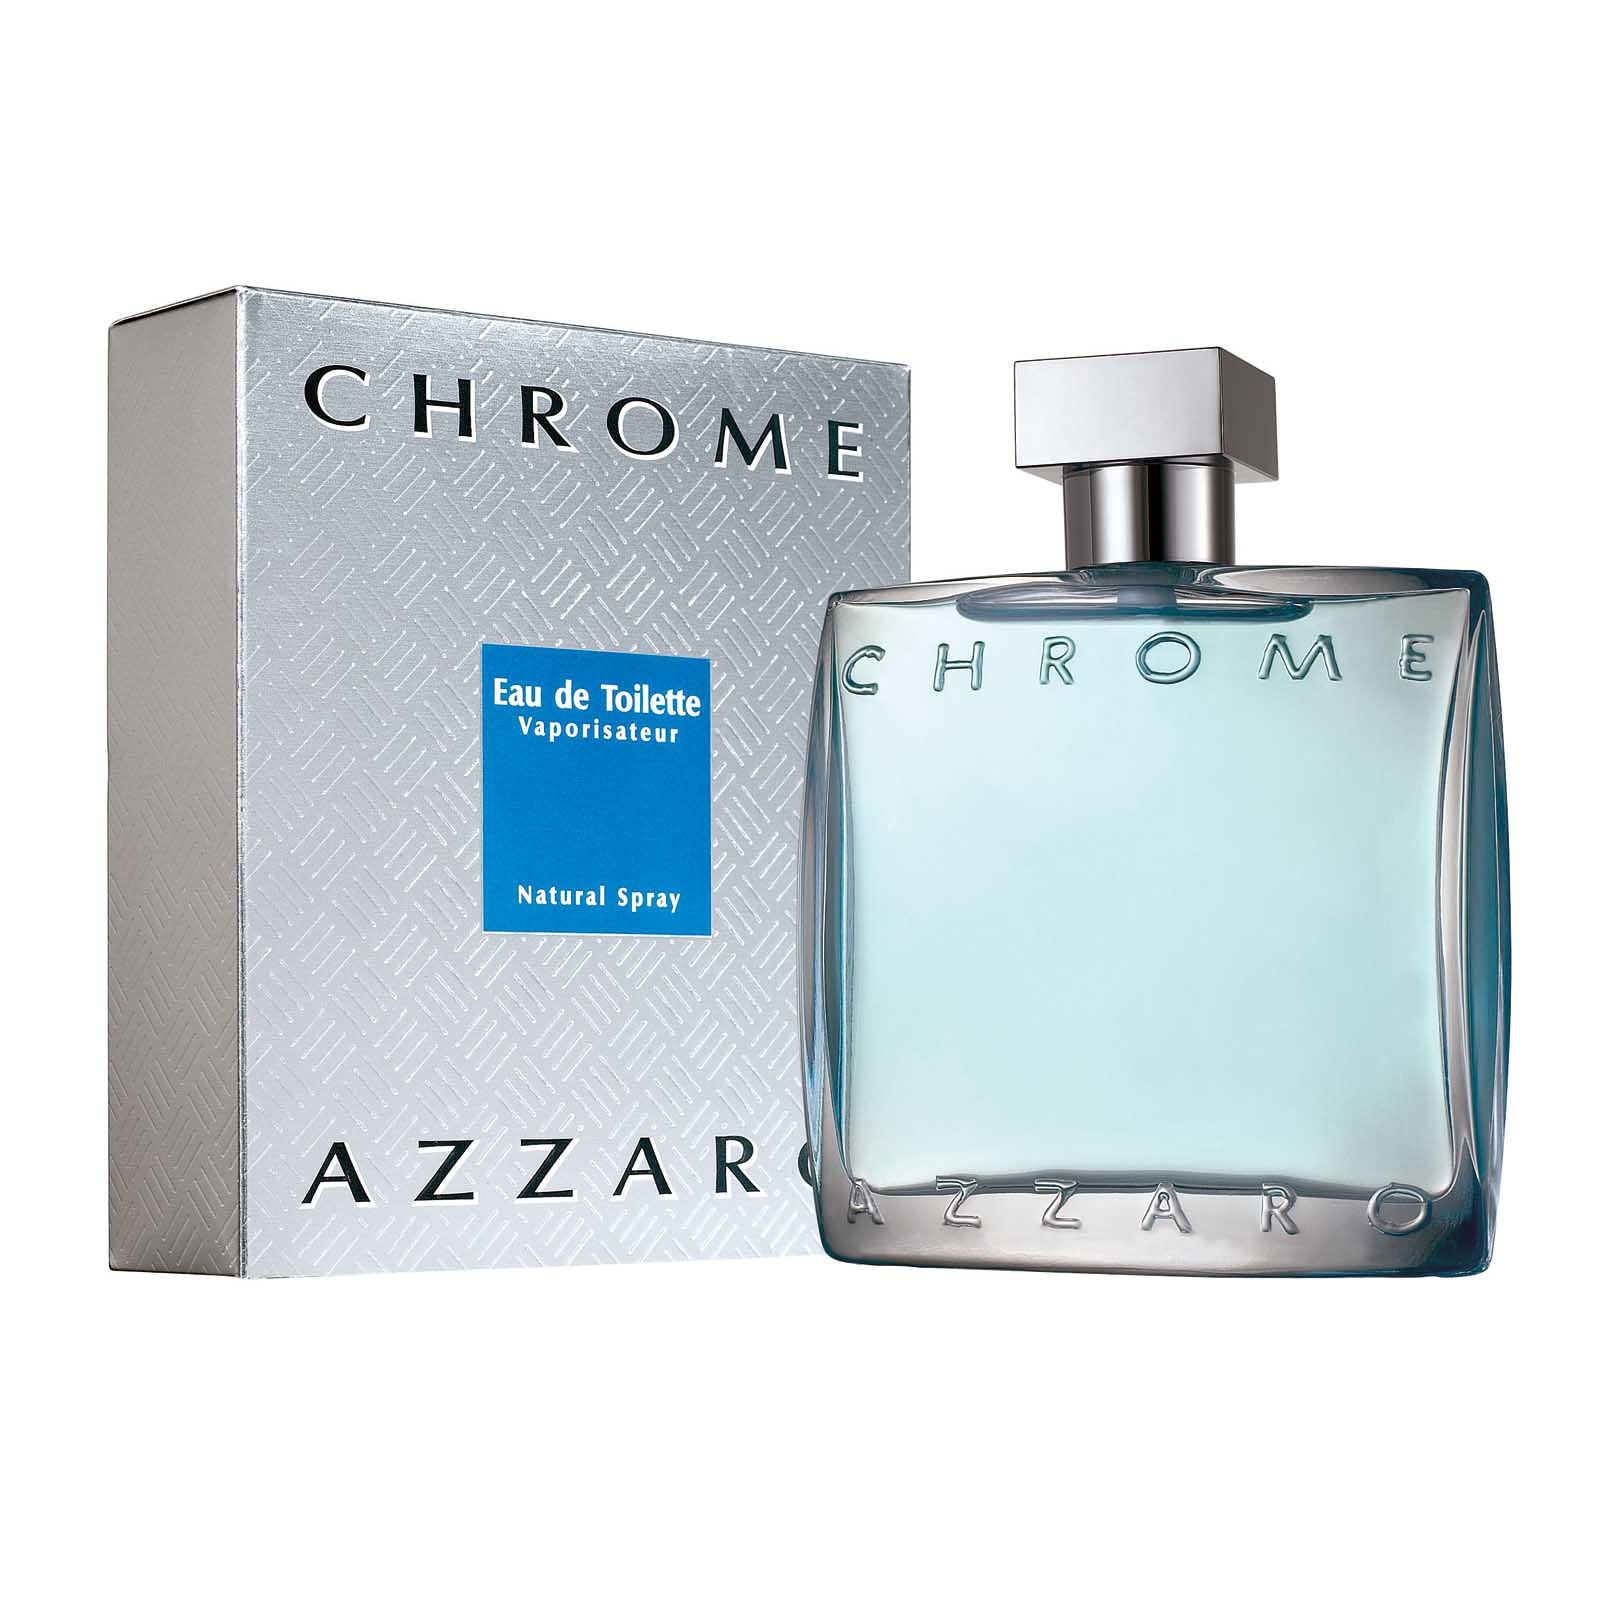 78ce9441e6 Perfume Azzaro Chrome Masculino Eau de Toilette - The Beauty Box